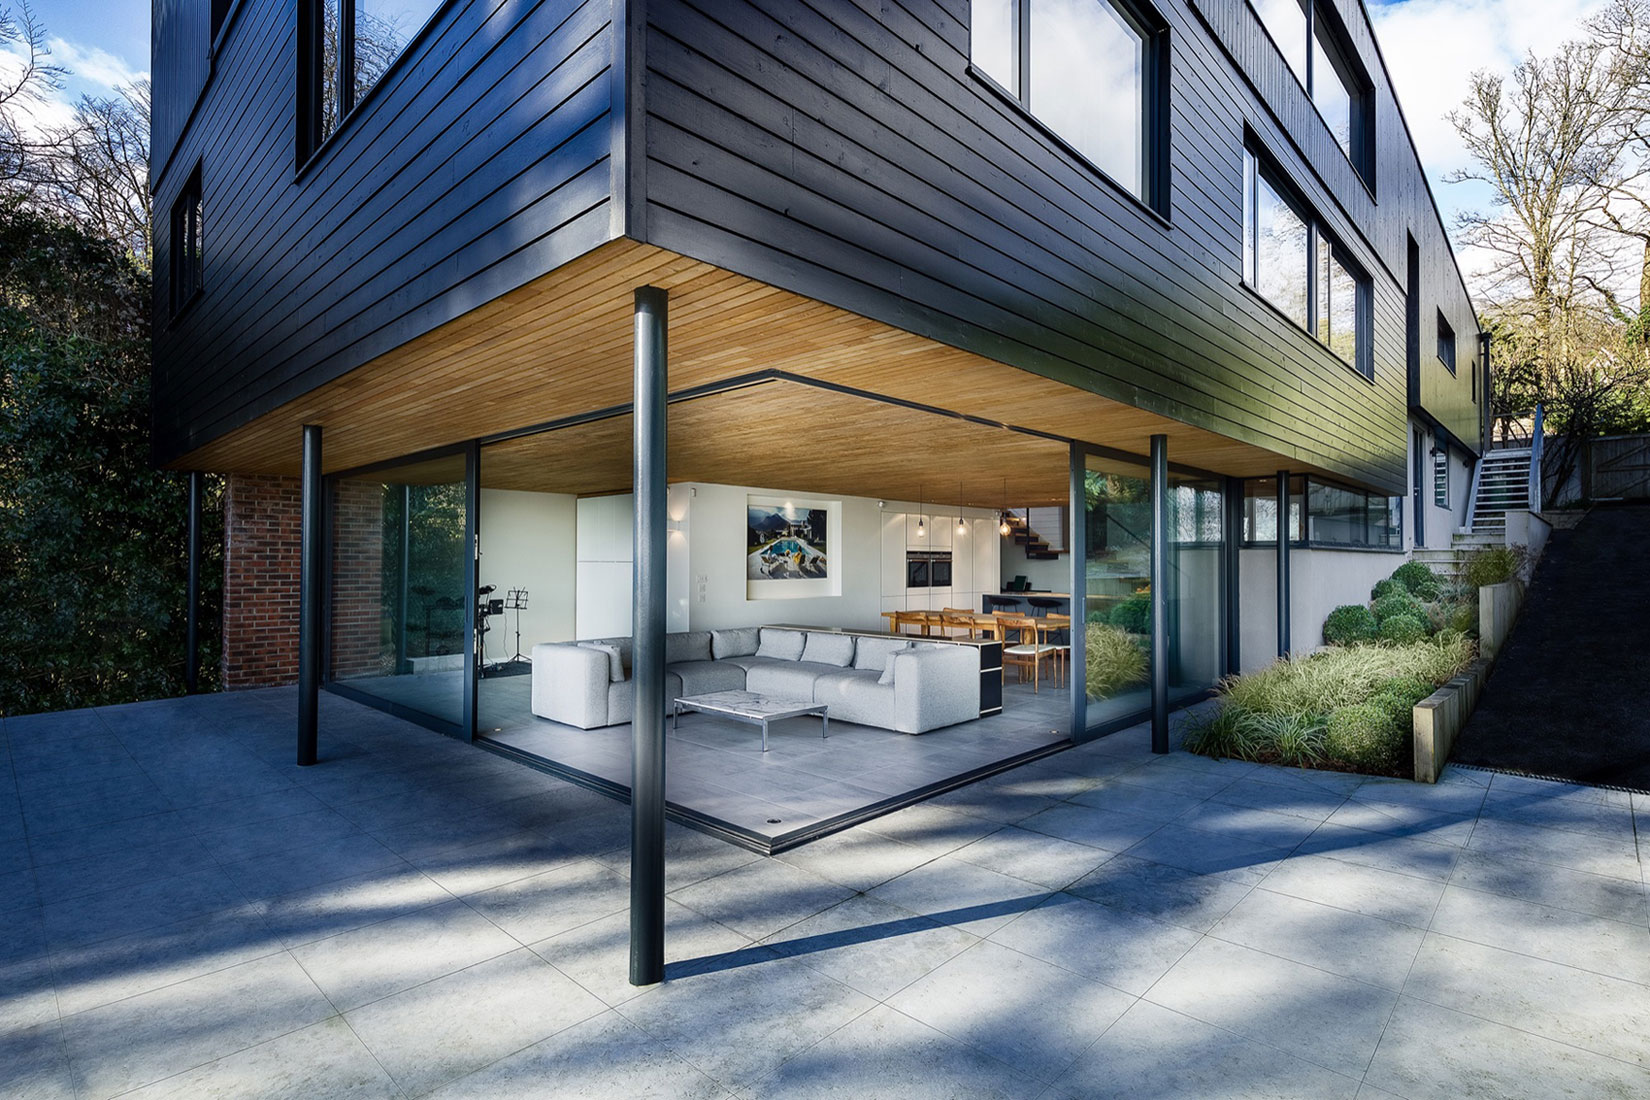 Ström Architects Remodel a Home in Winchester, England